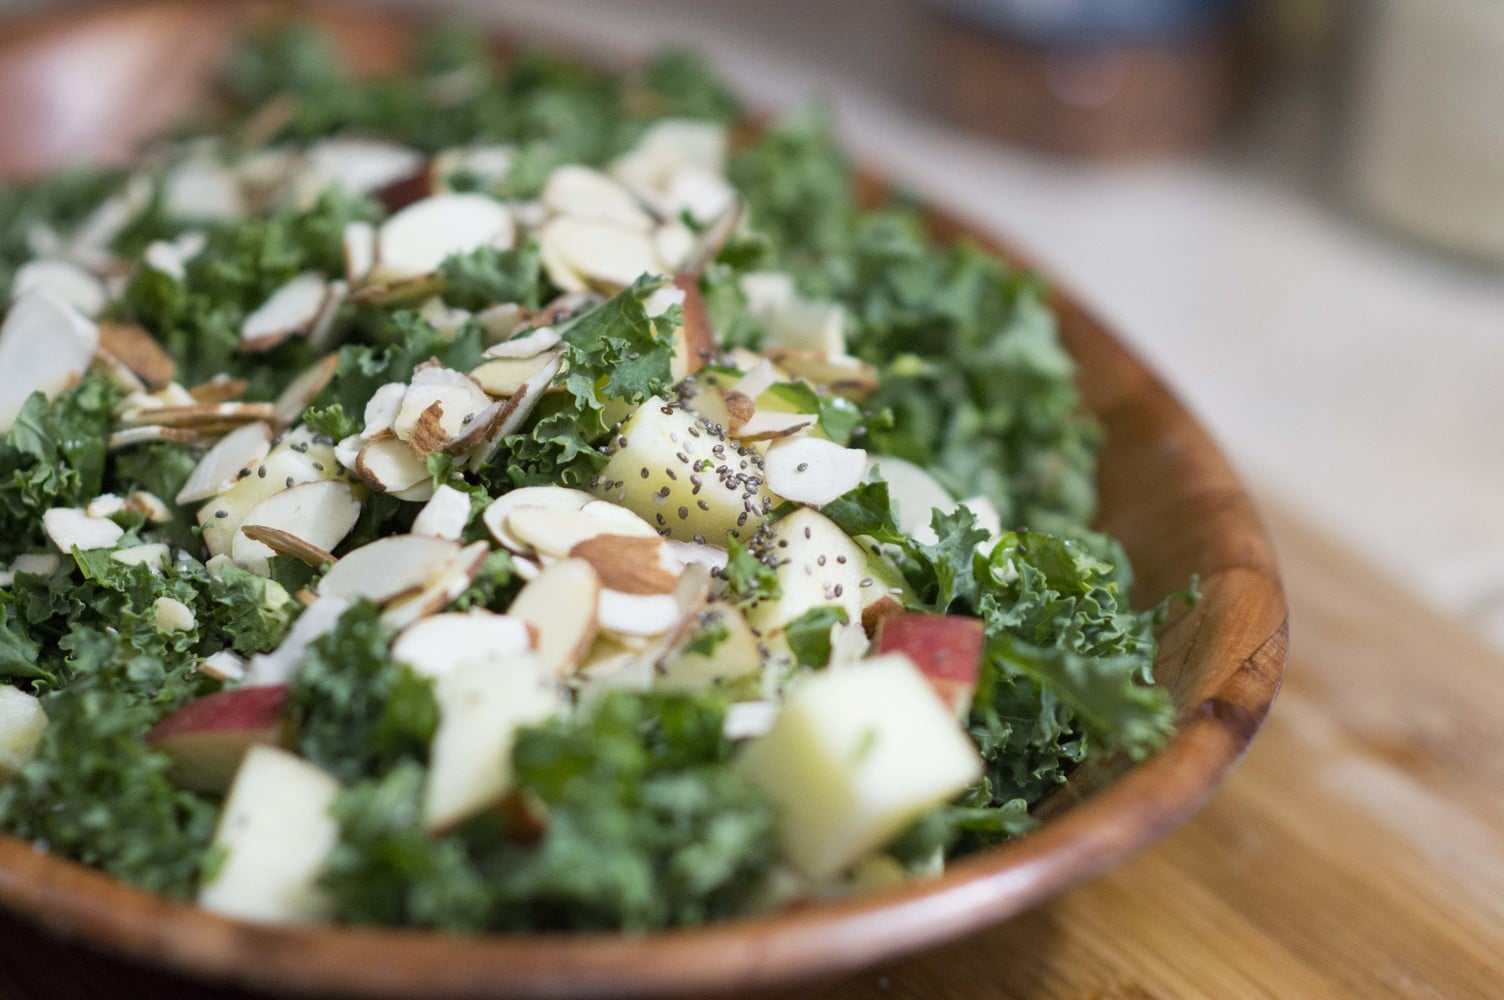 chopped kale apple salad topped with almonds and chia seeds